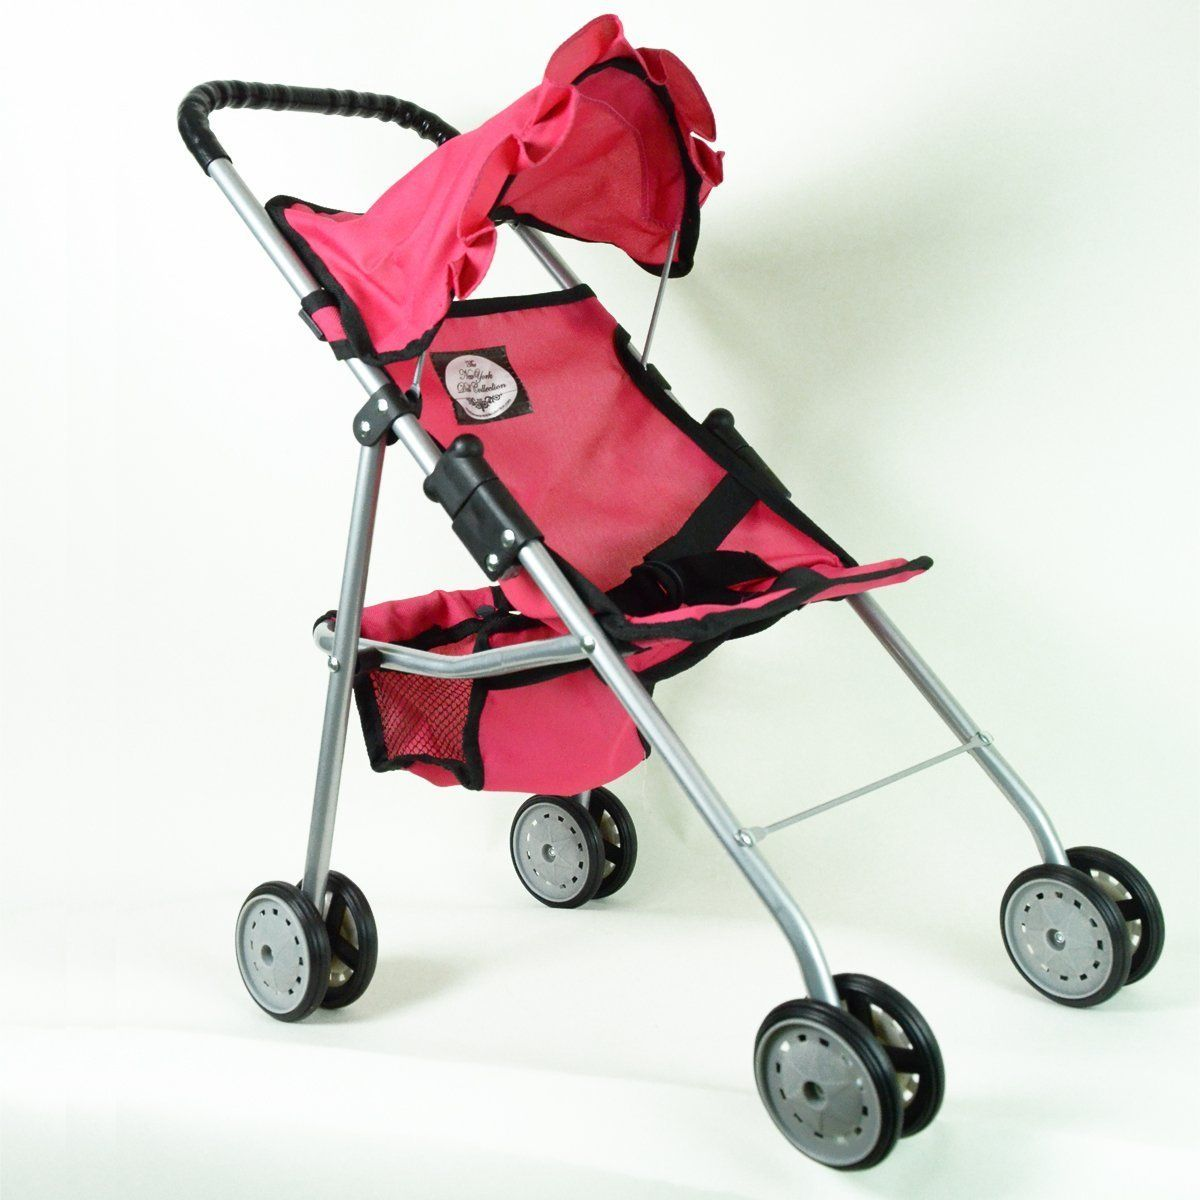 Amazon.com: First Doll Stroller for Kids - Pink: Toys ...